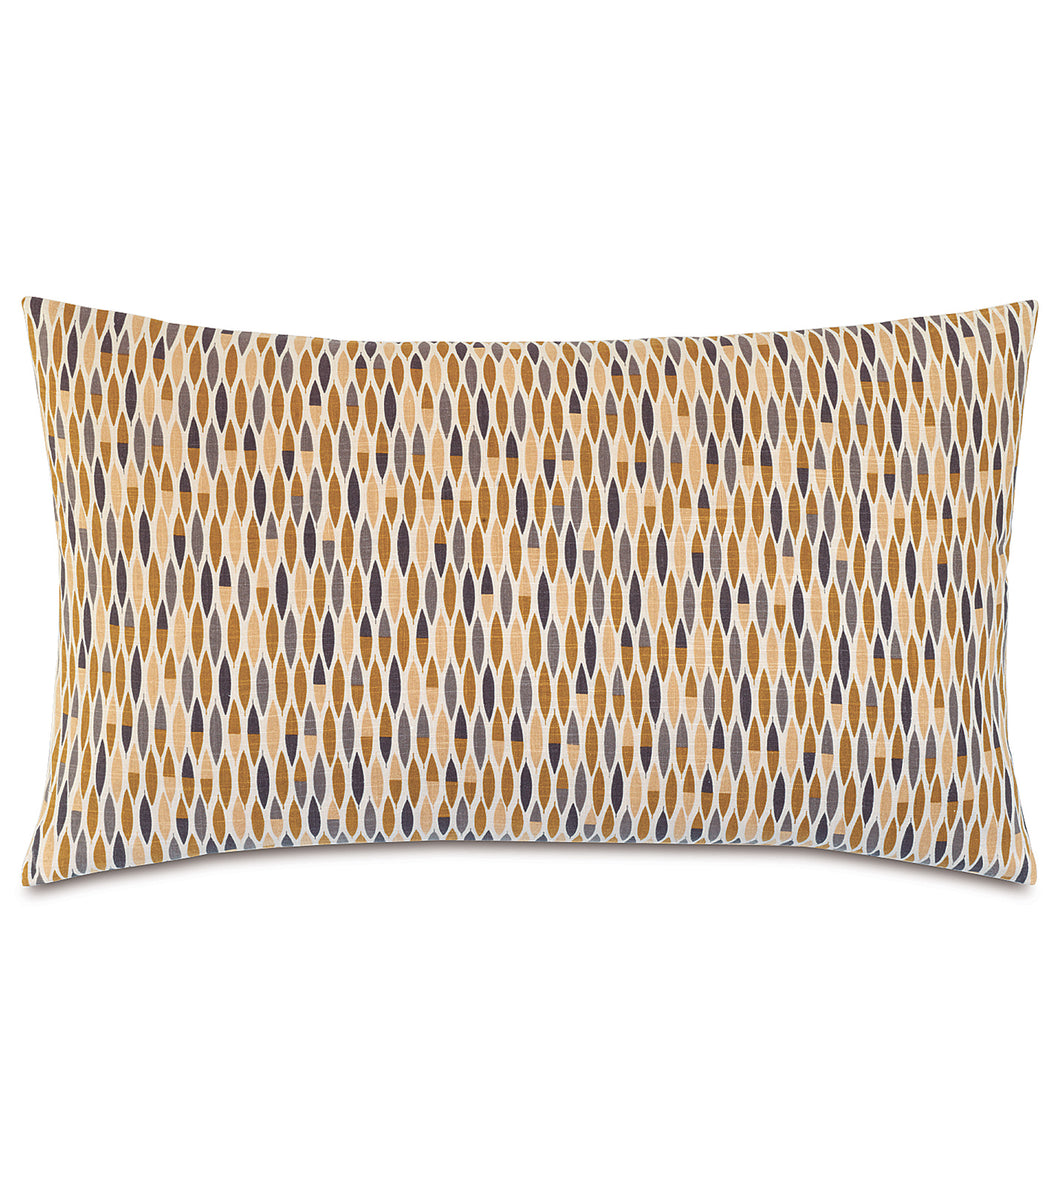 Mustard Fall Geometric Rustic Cabin Cotton King Sham Knife Edge 21